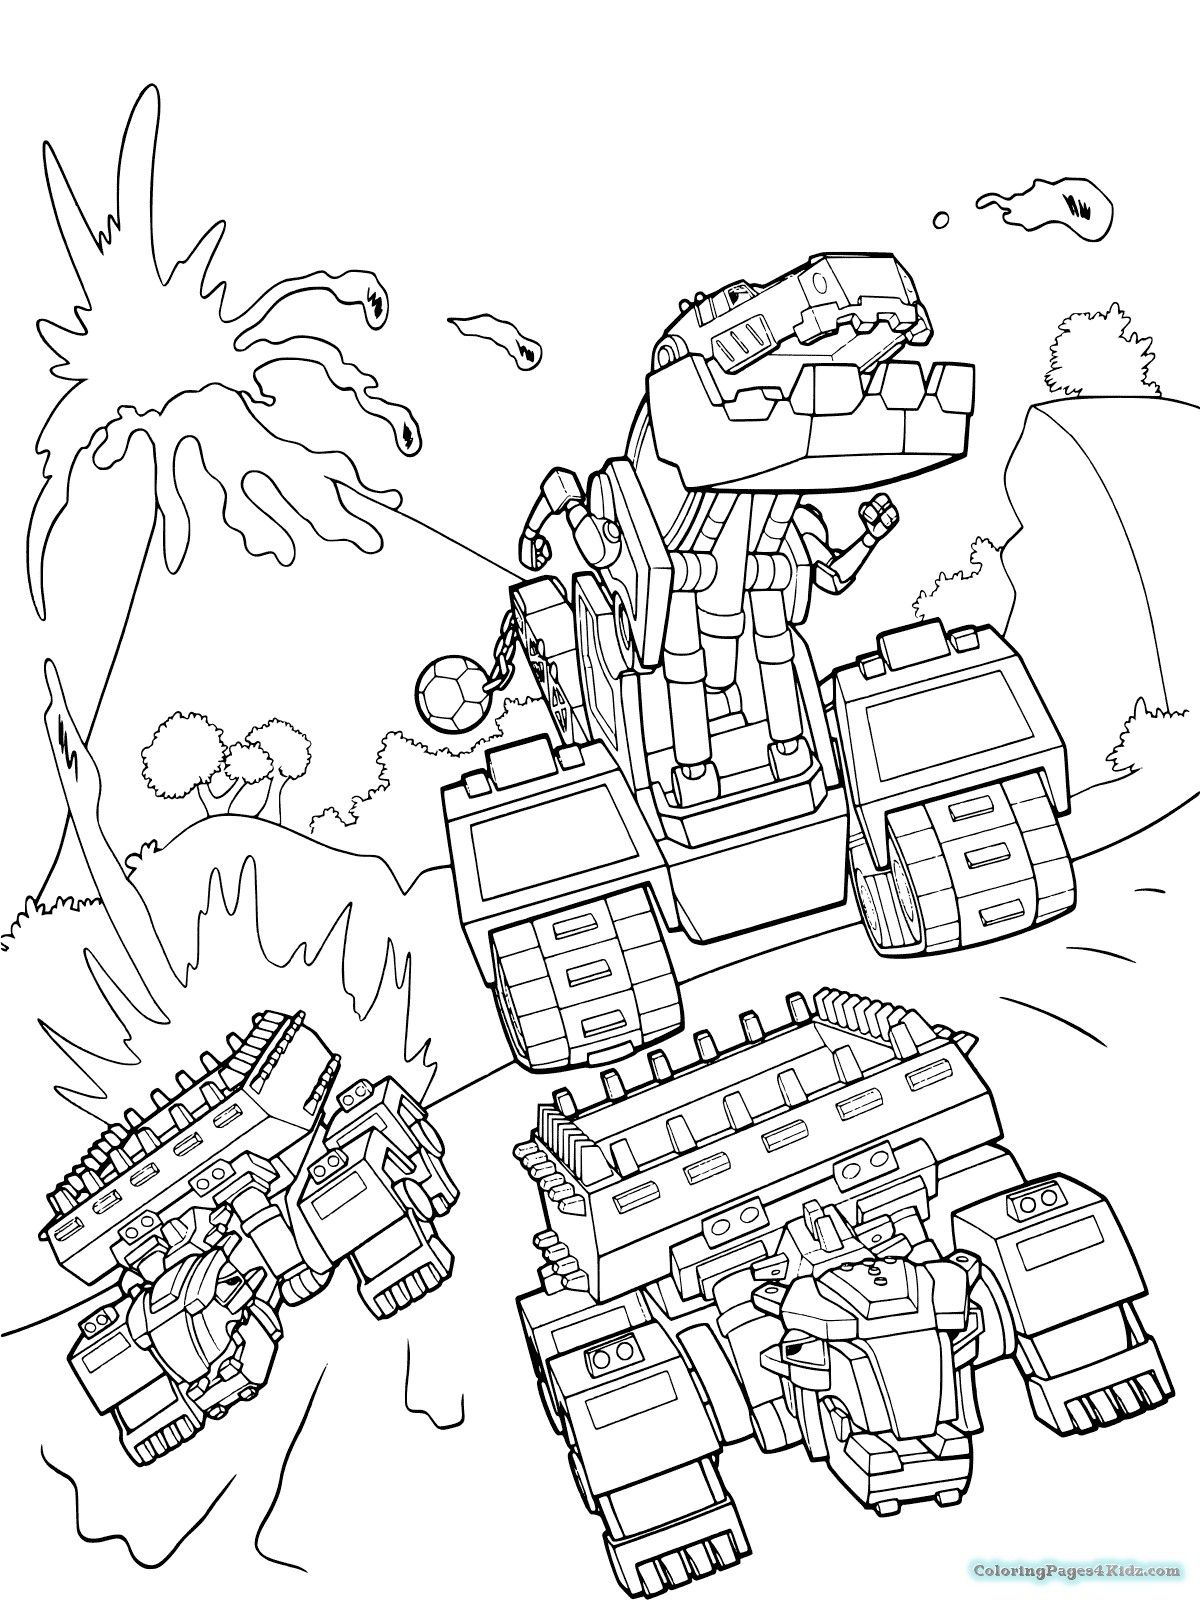 Dinosaurs Coloring Pages Star Wars Coloring Book Dinosaur Coloring Pages Coloring Pages